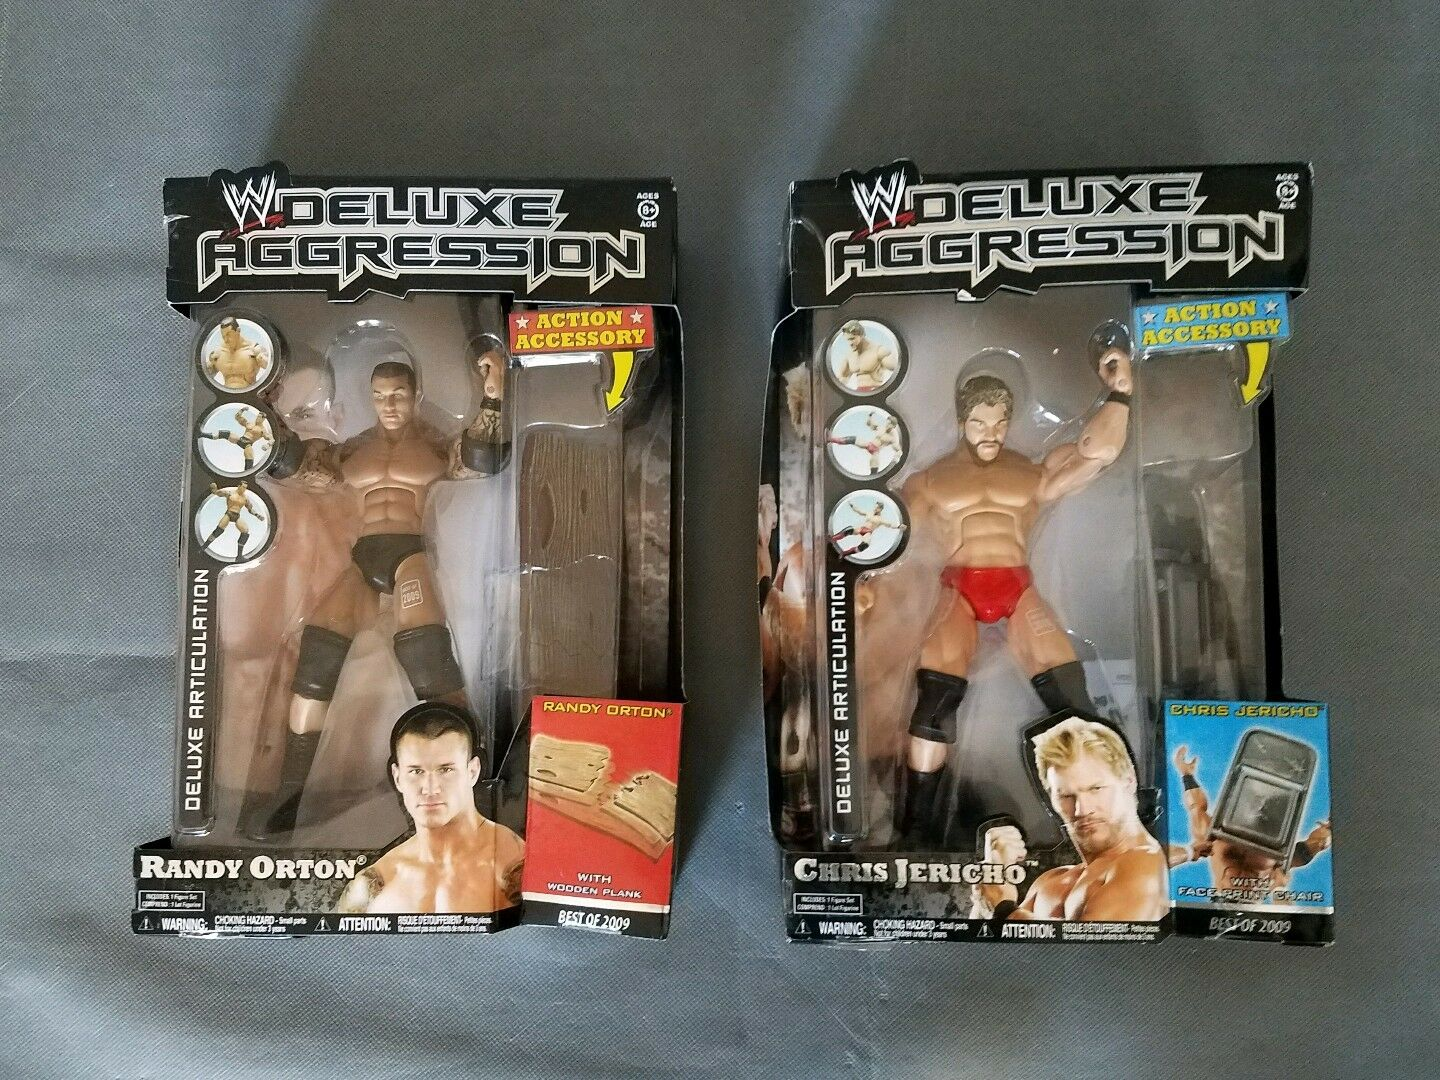 Best of 2009 Chris Jericho and Randy Orton W Deluxe Aggression Wrestling Figure